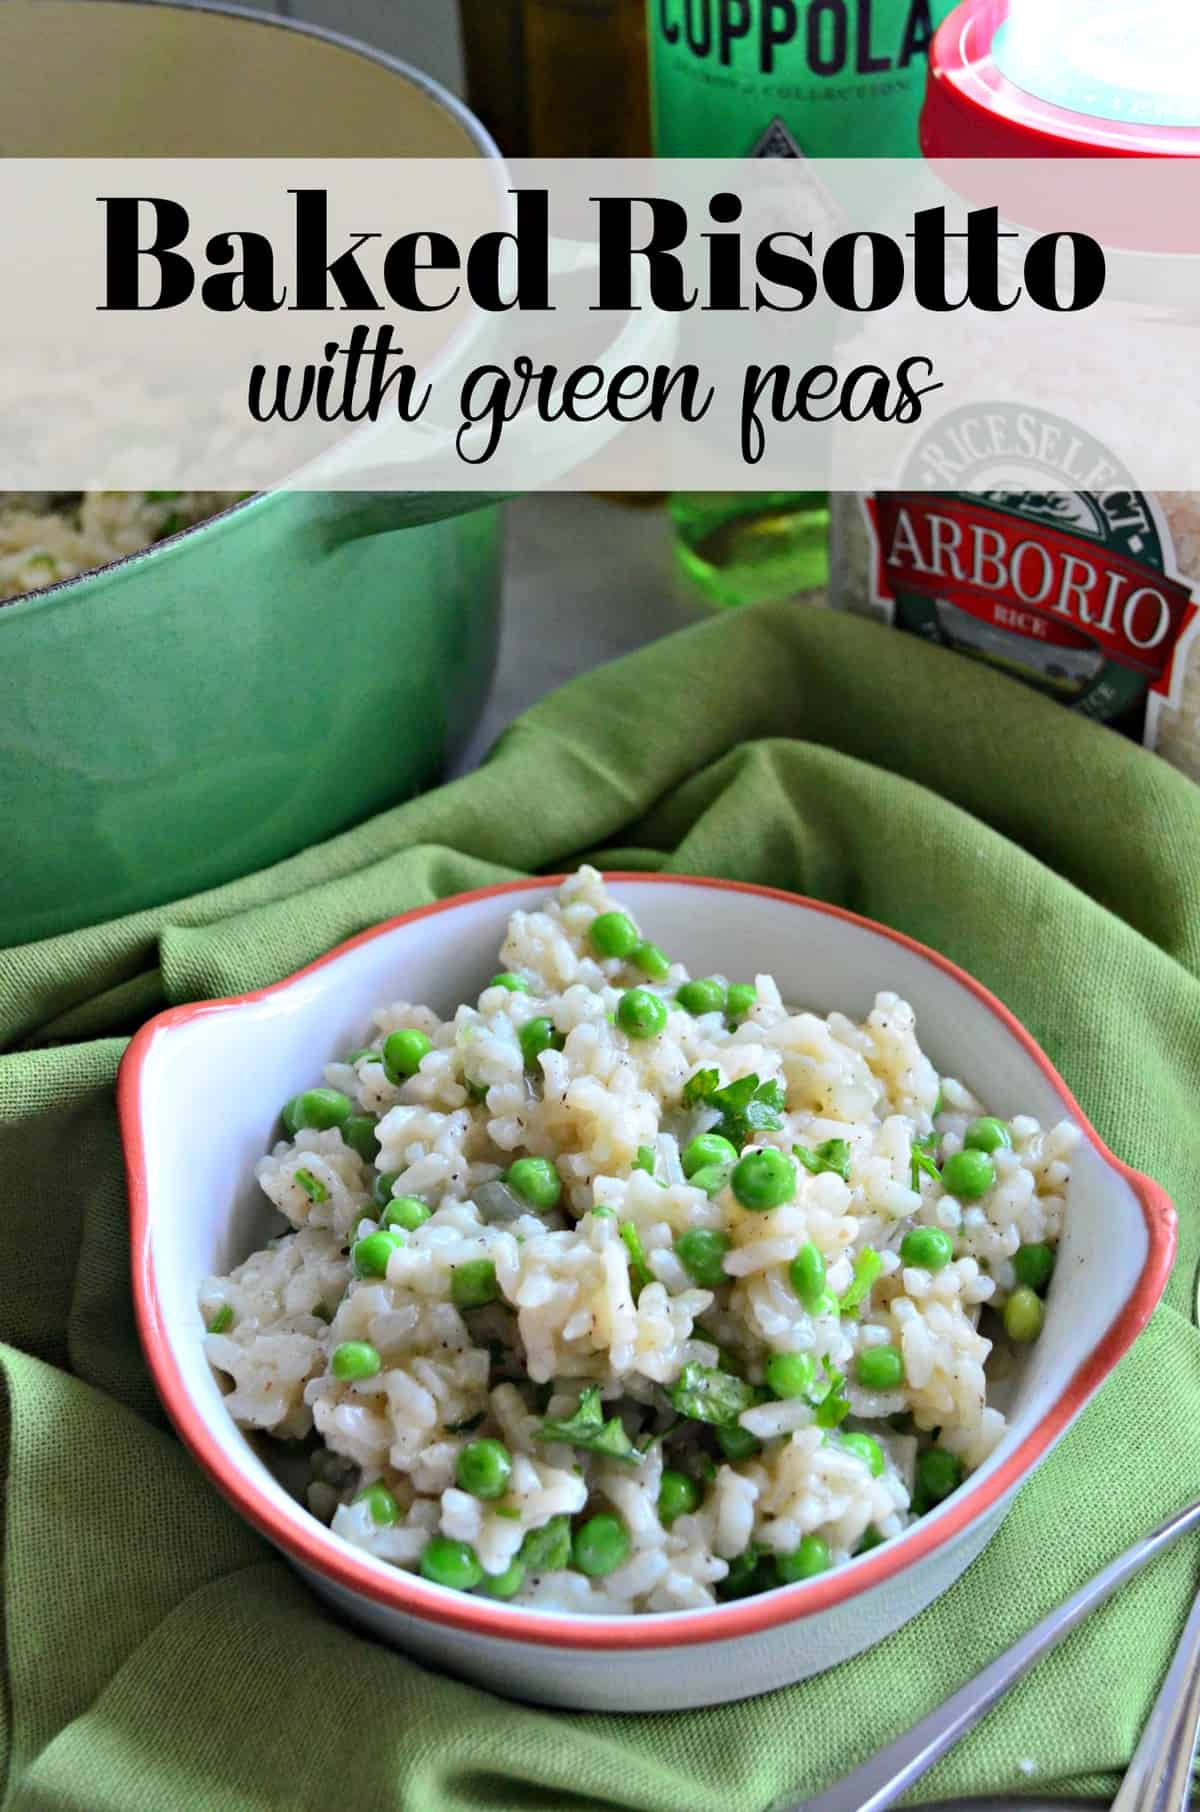 Baked Risotto with Green Peas and pepper in small white bowl on green tablecloth with title text.